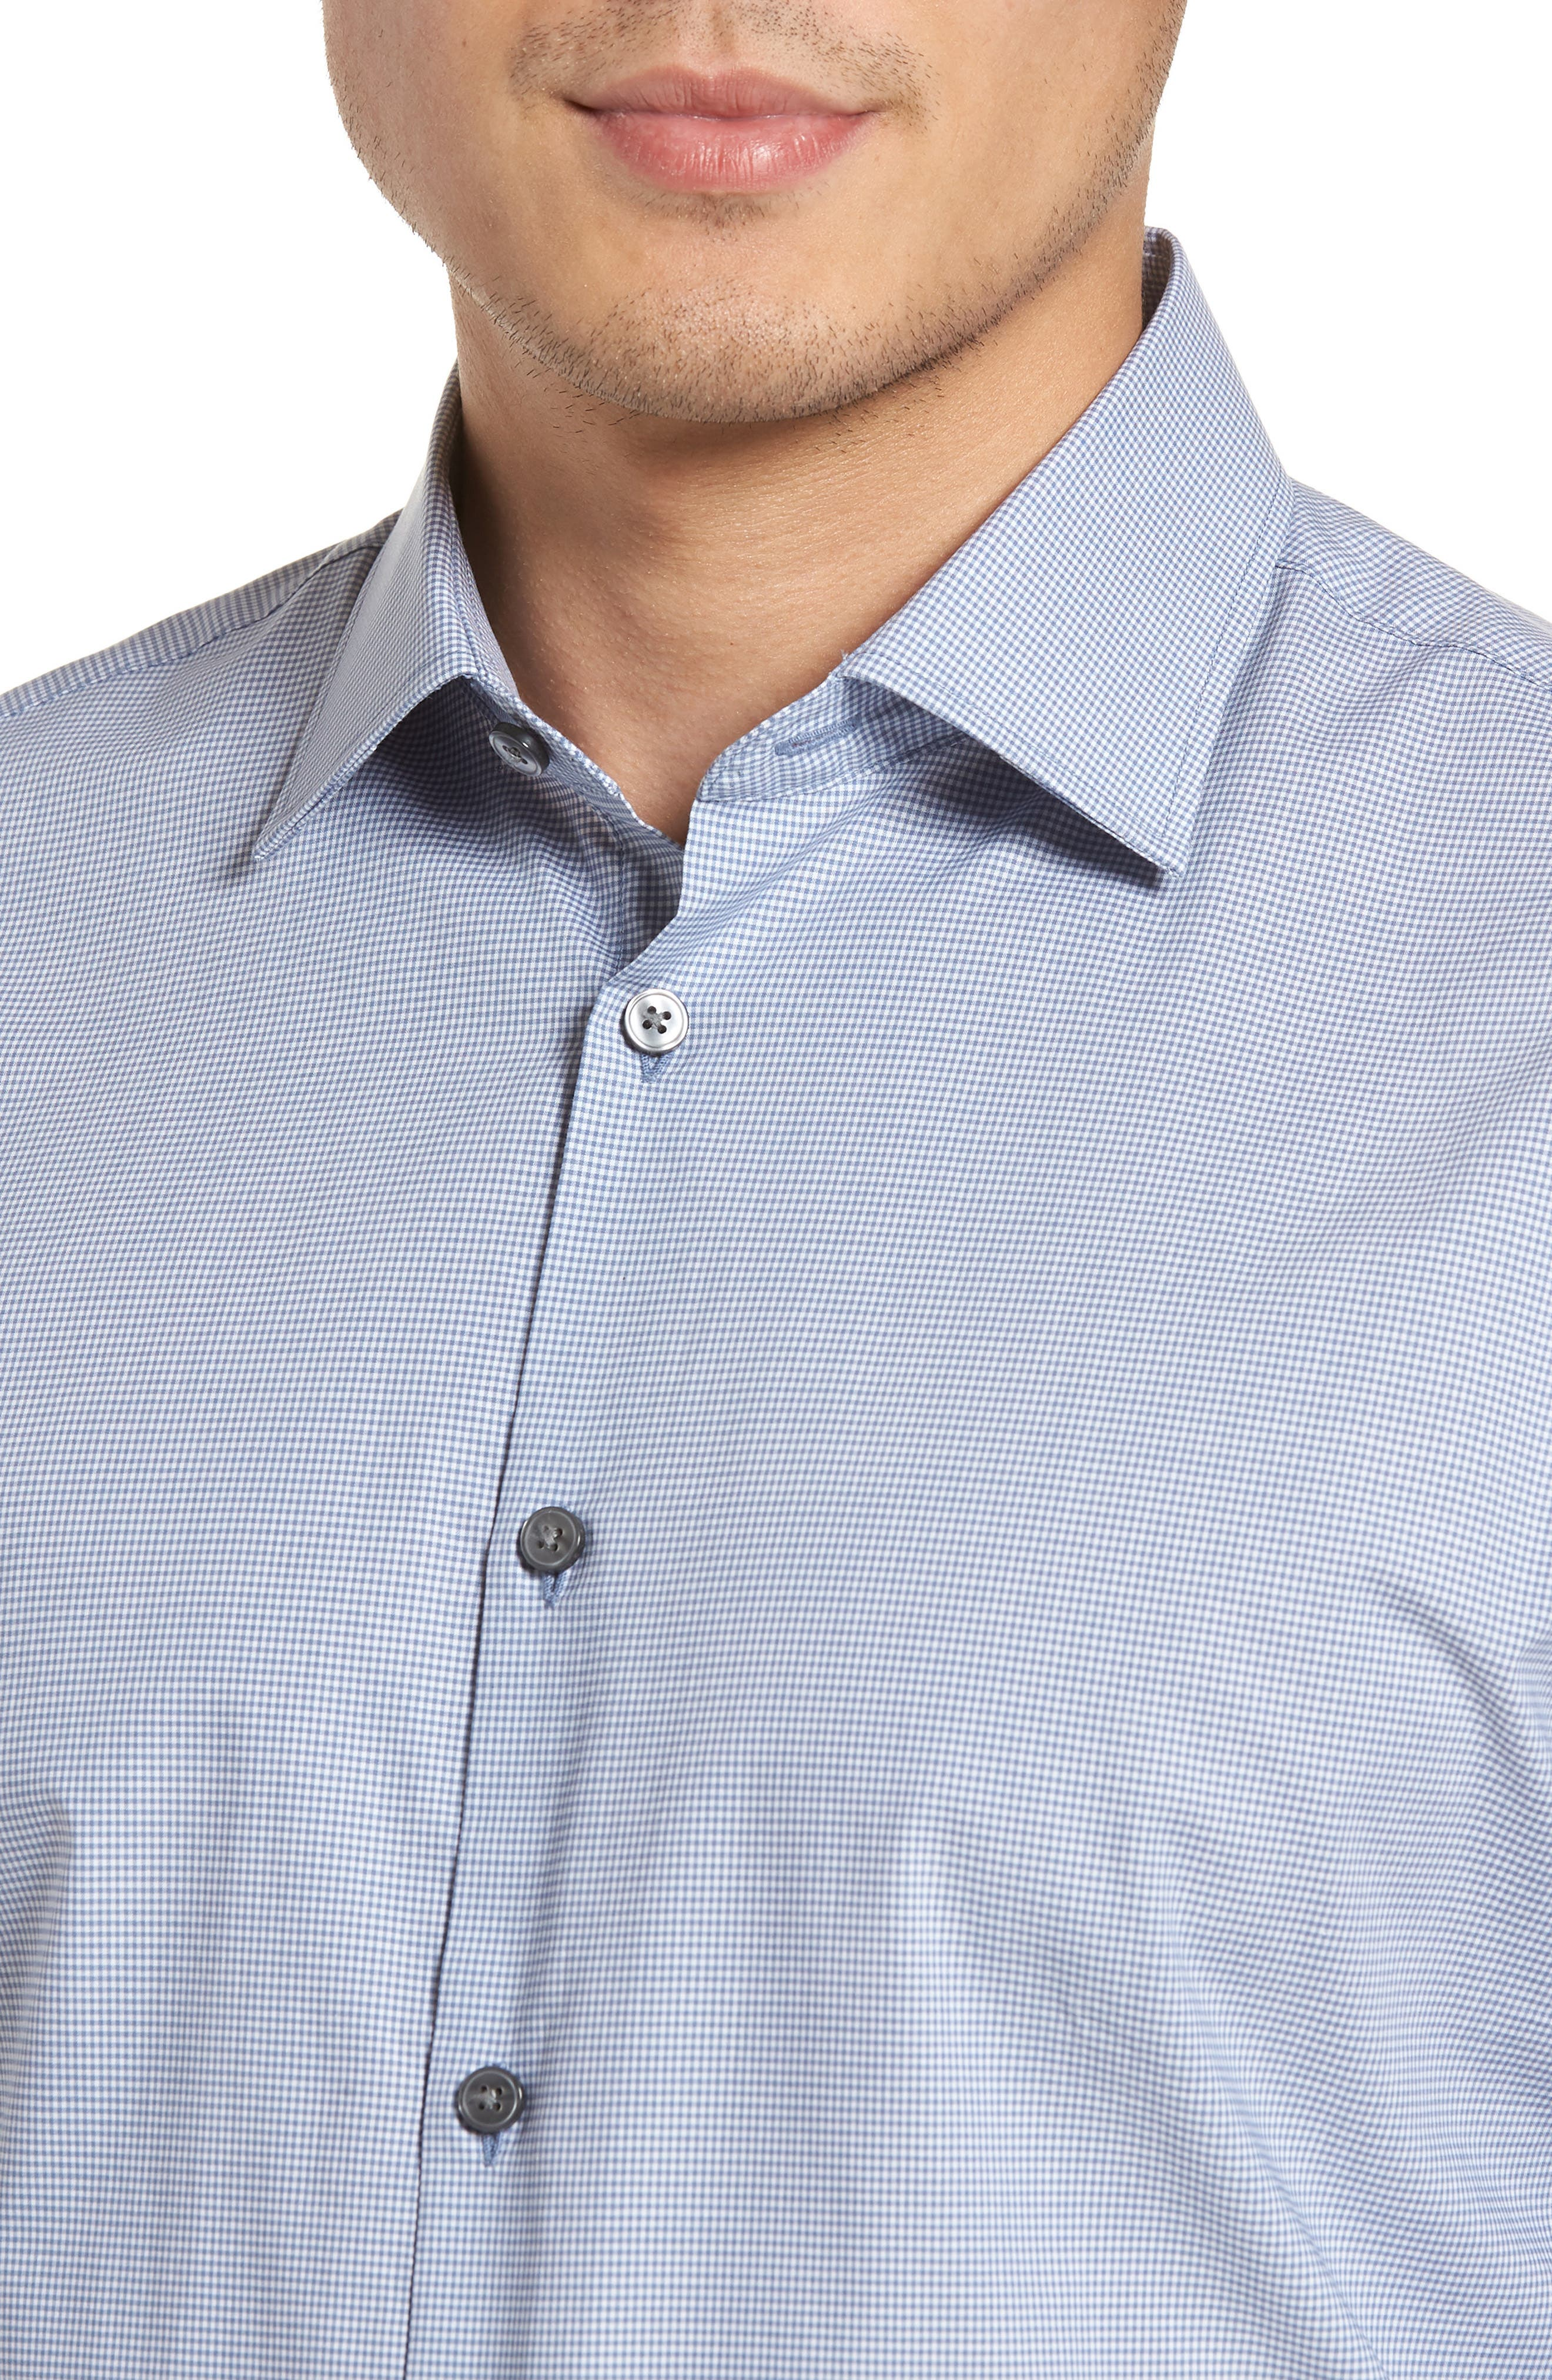 Regular Fit Stretch Microcheck Dress Shirt,                             Alternate thumbnail 2, color,                             DUSTED BLUE